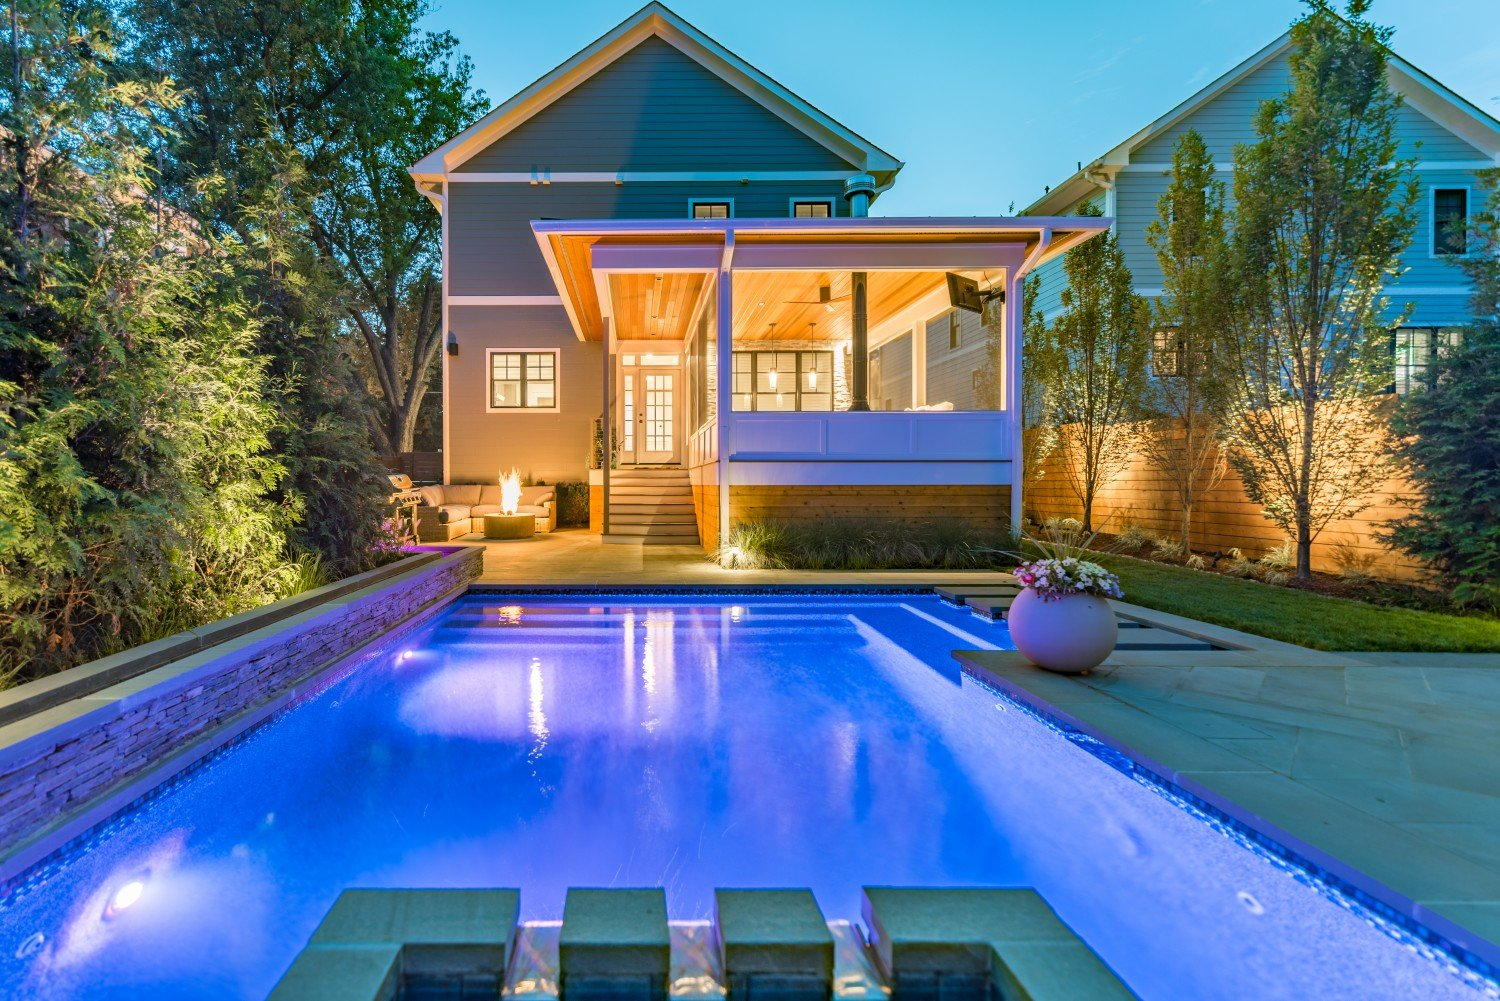 award-winning-patio-at-night-with-pool